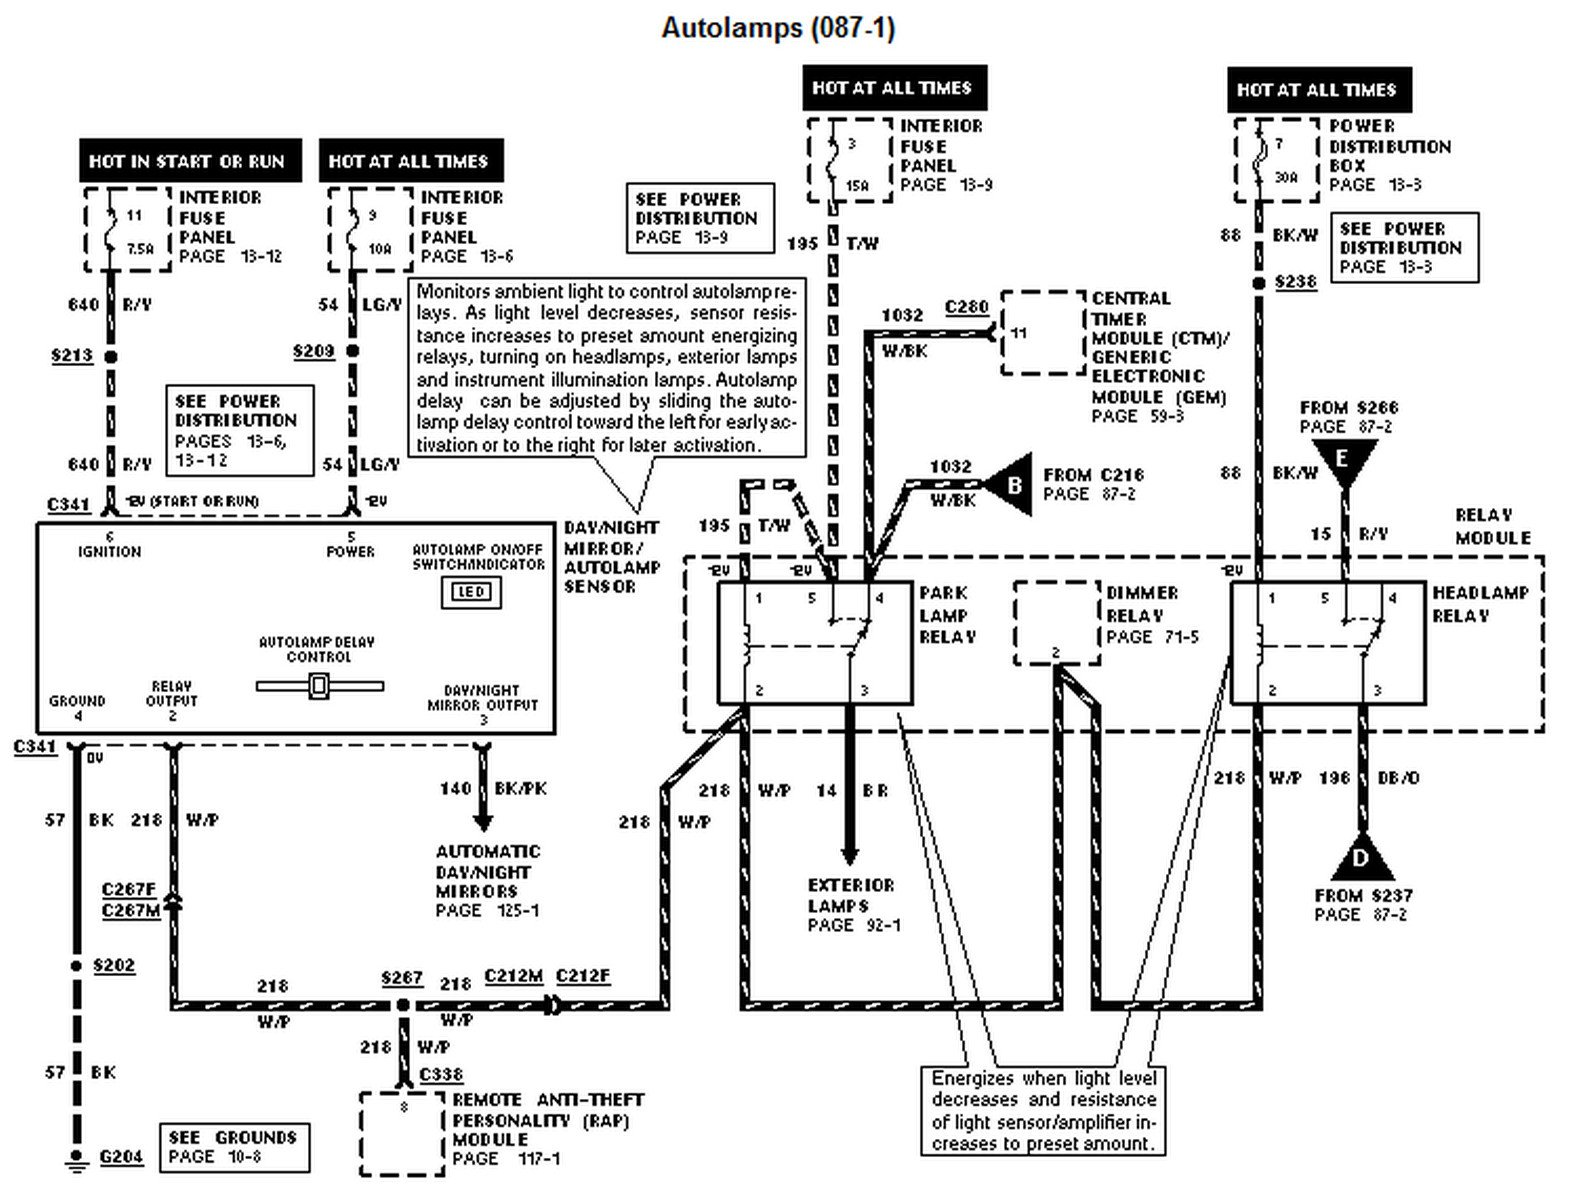 96 Ford Explorer Radio Wiring Diagram from ww2.justanswer.com